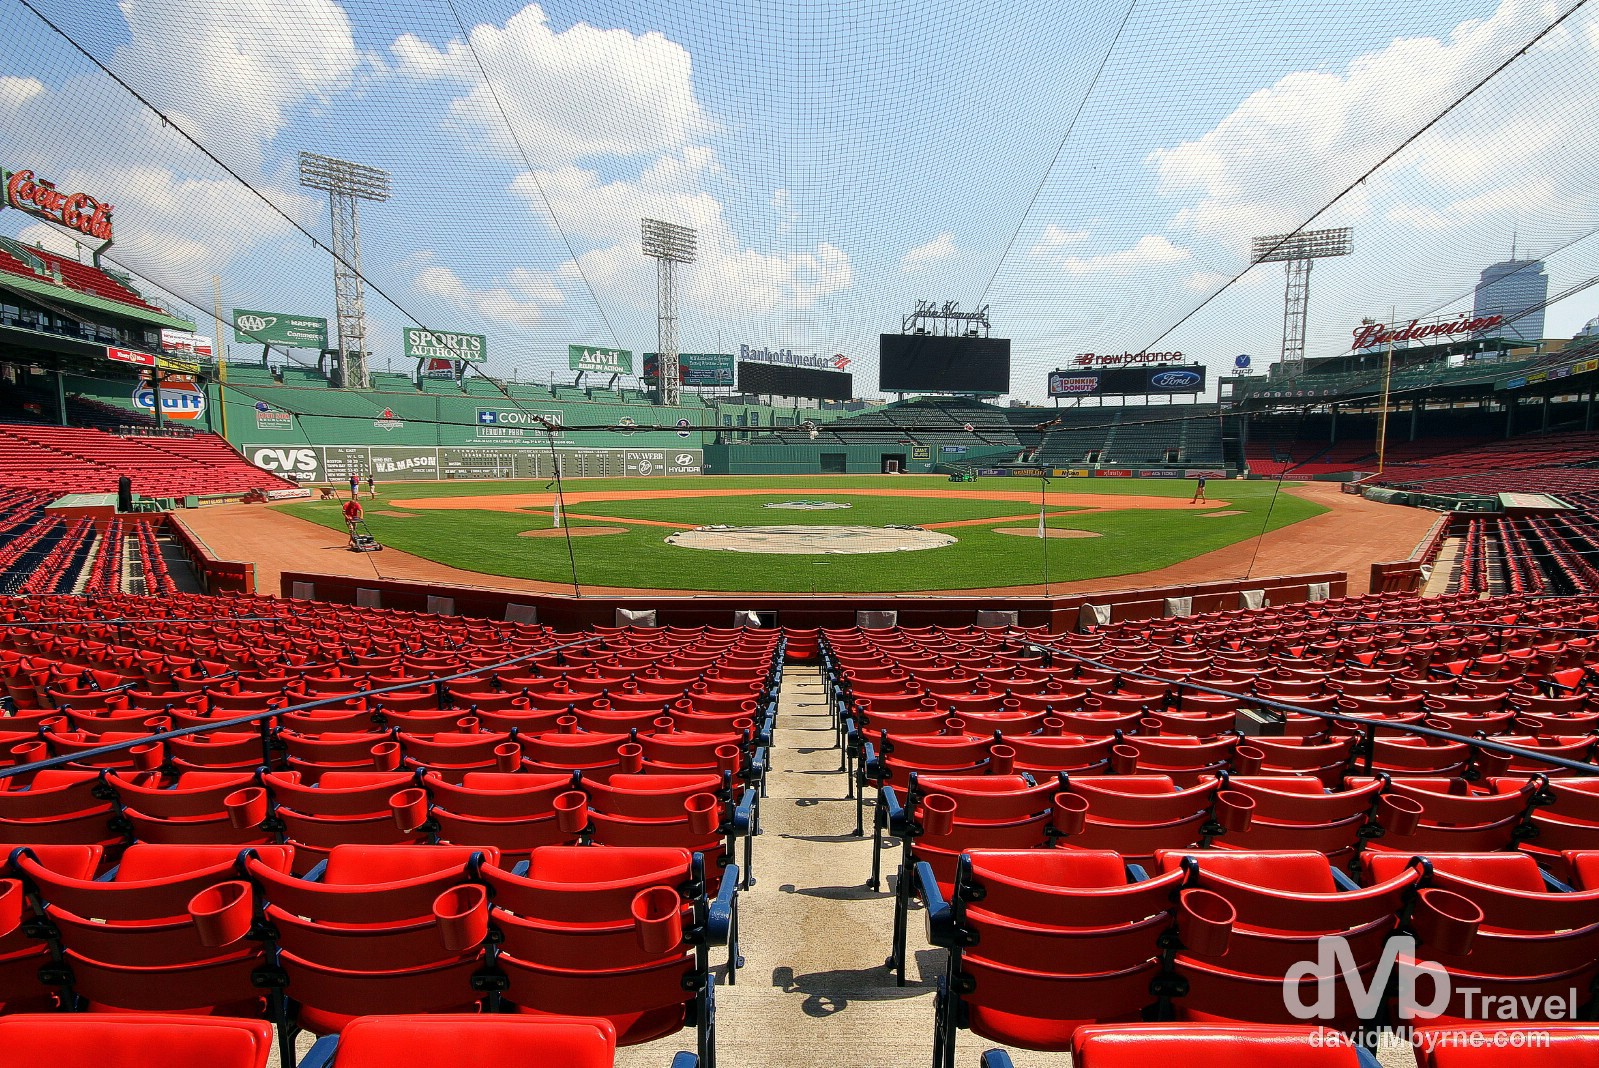 Fenway Park, Fenway, Boston, Massachusetts, USA. July 17th 2013.